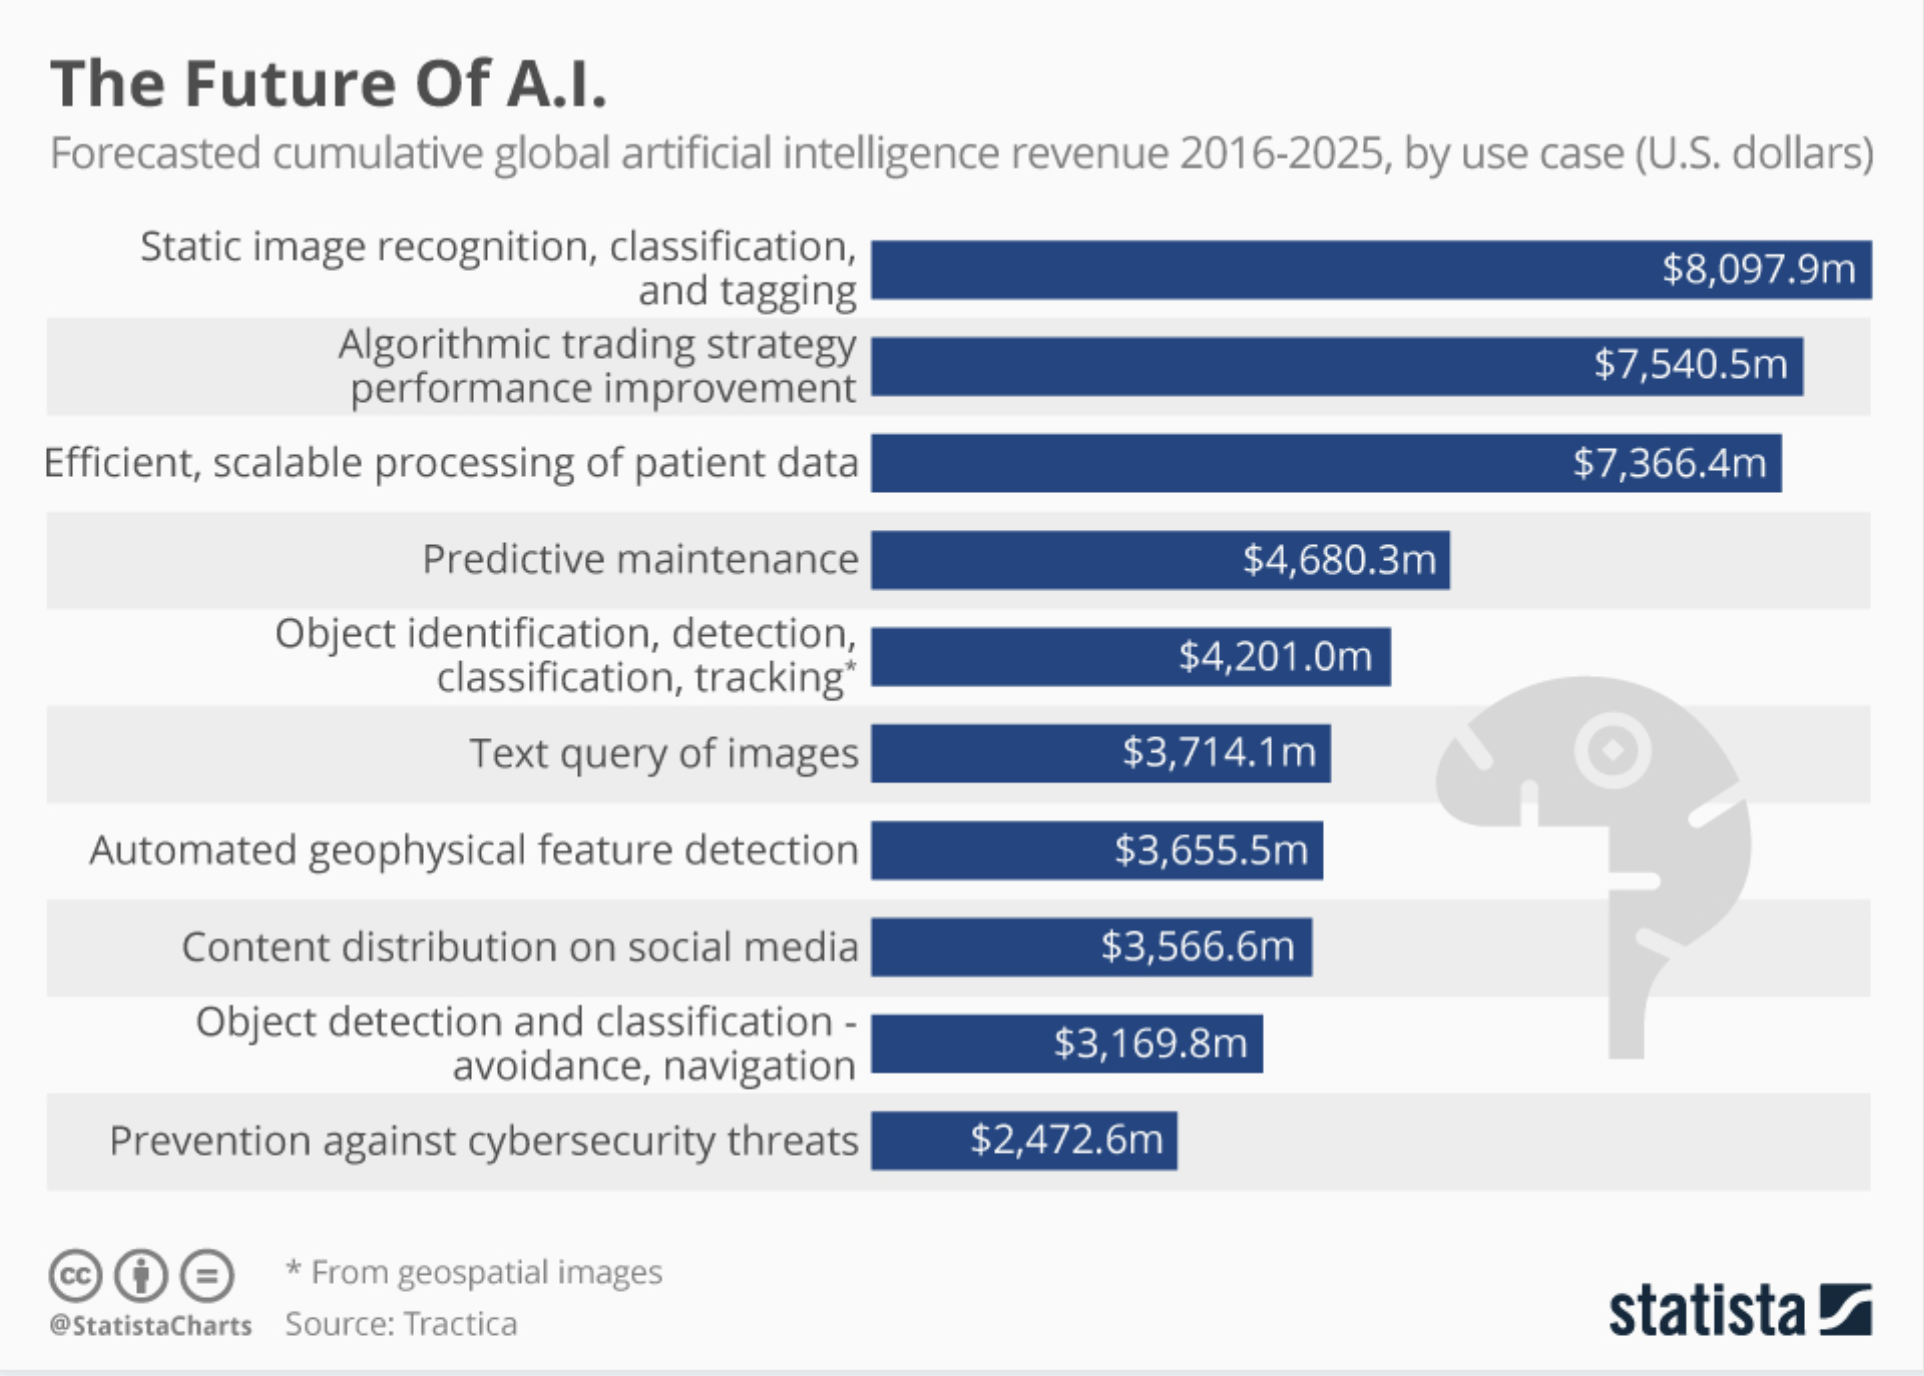 Where is AI going to be most profitable?